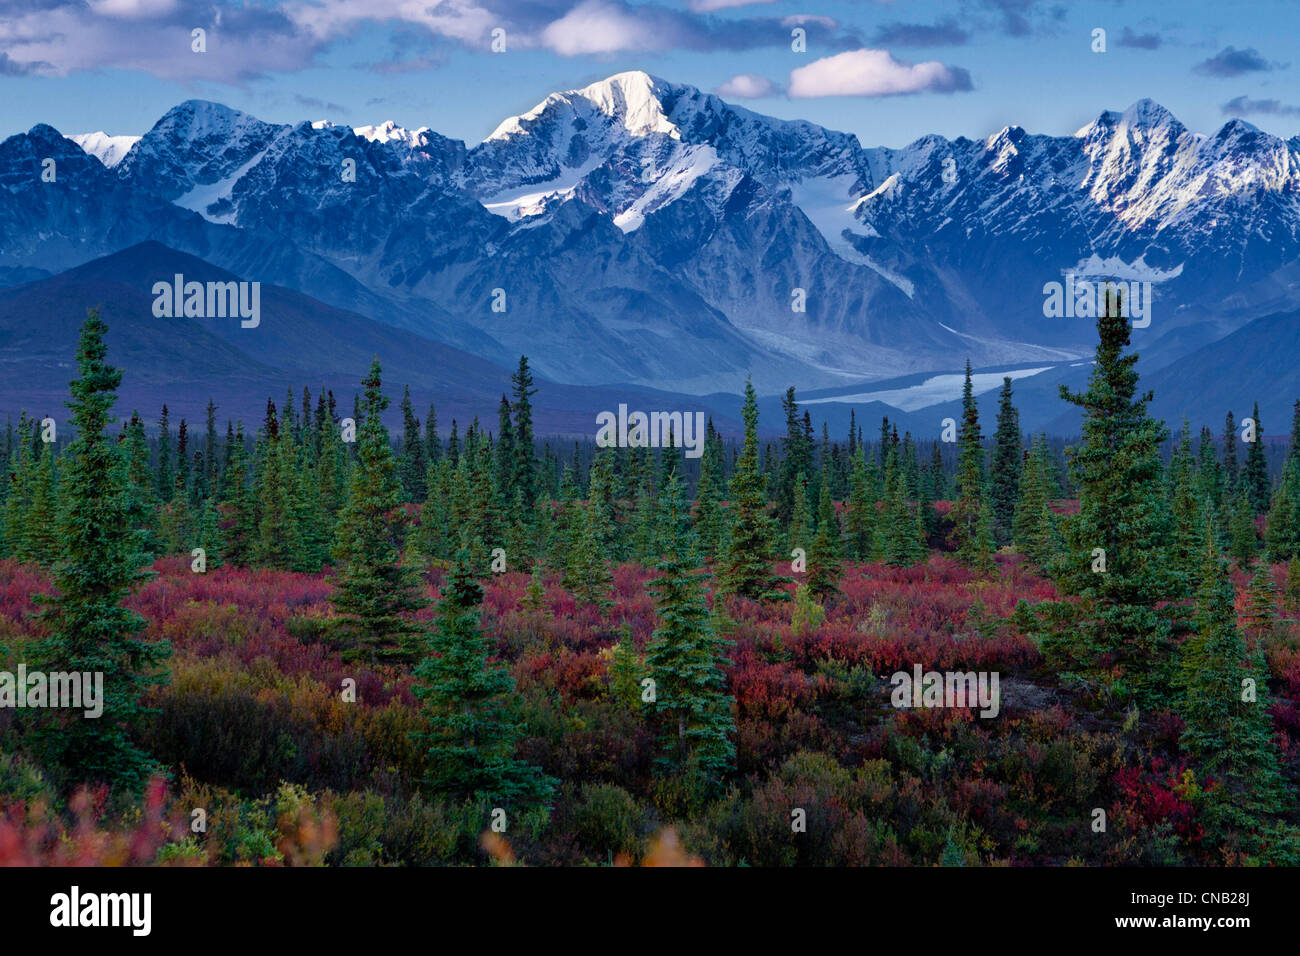 Scenic viw of the Alaska Range, Nenana Glacier and boreal forest along the Denali Highway, Alaska - Stock Image